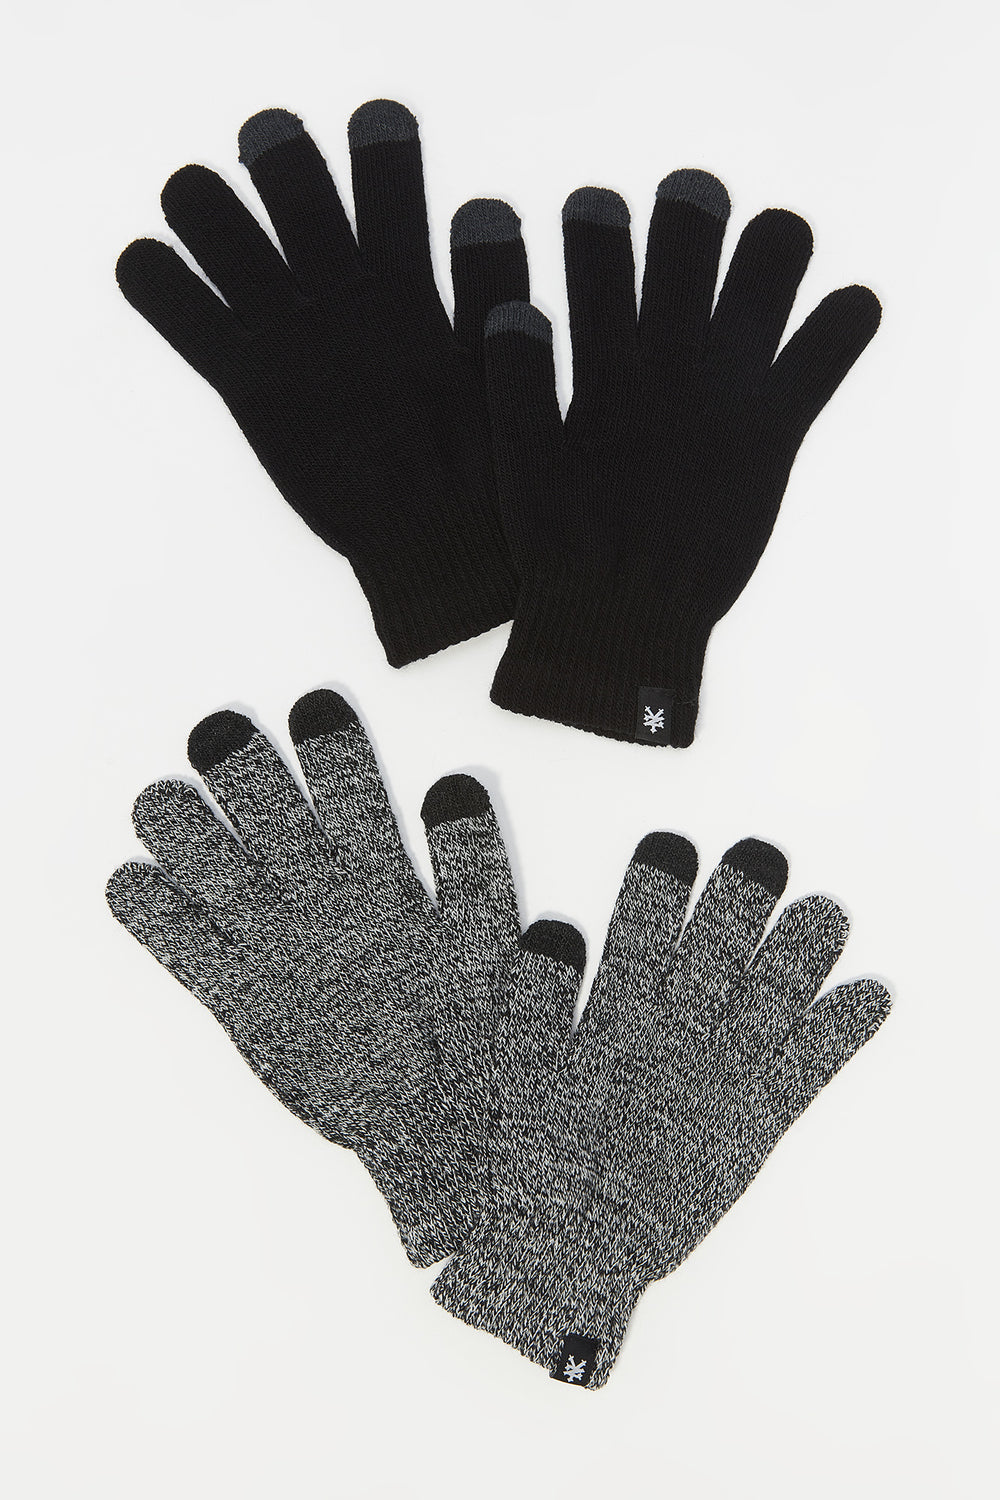 Zoo York Mens Touch Screen Gloves 2-Pack Black with White